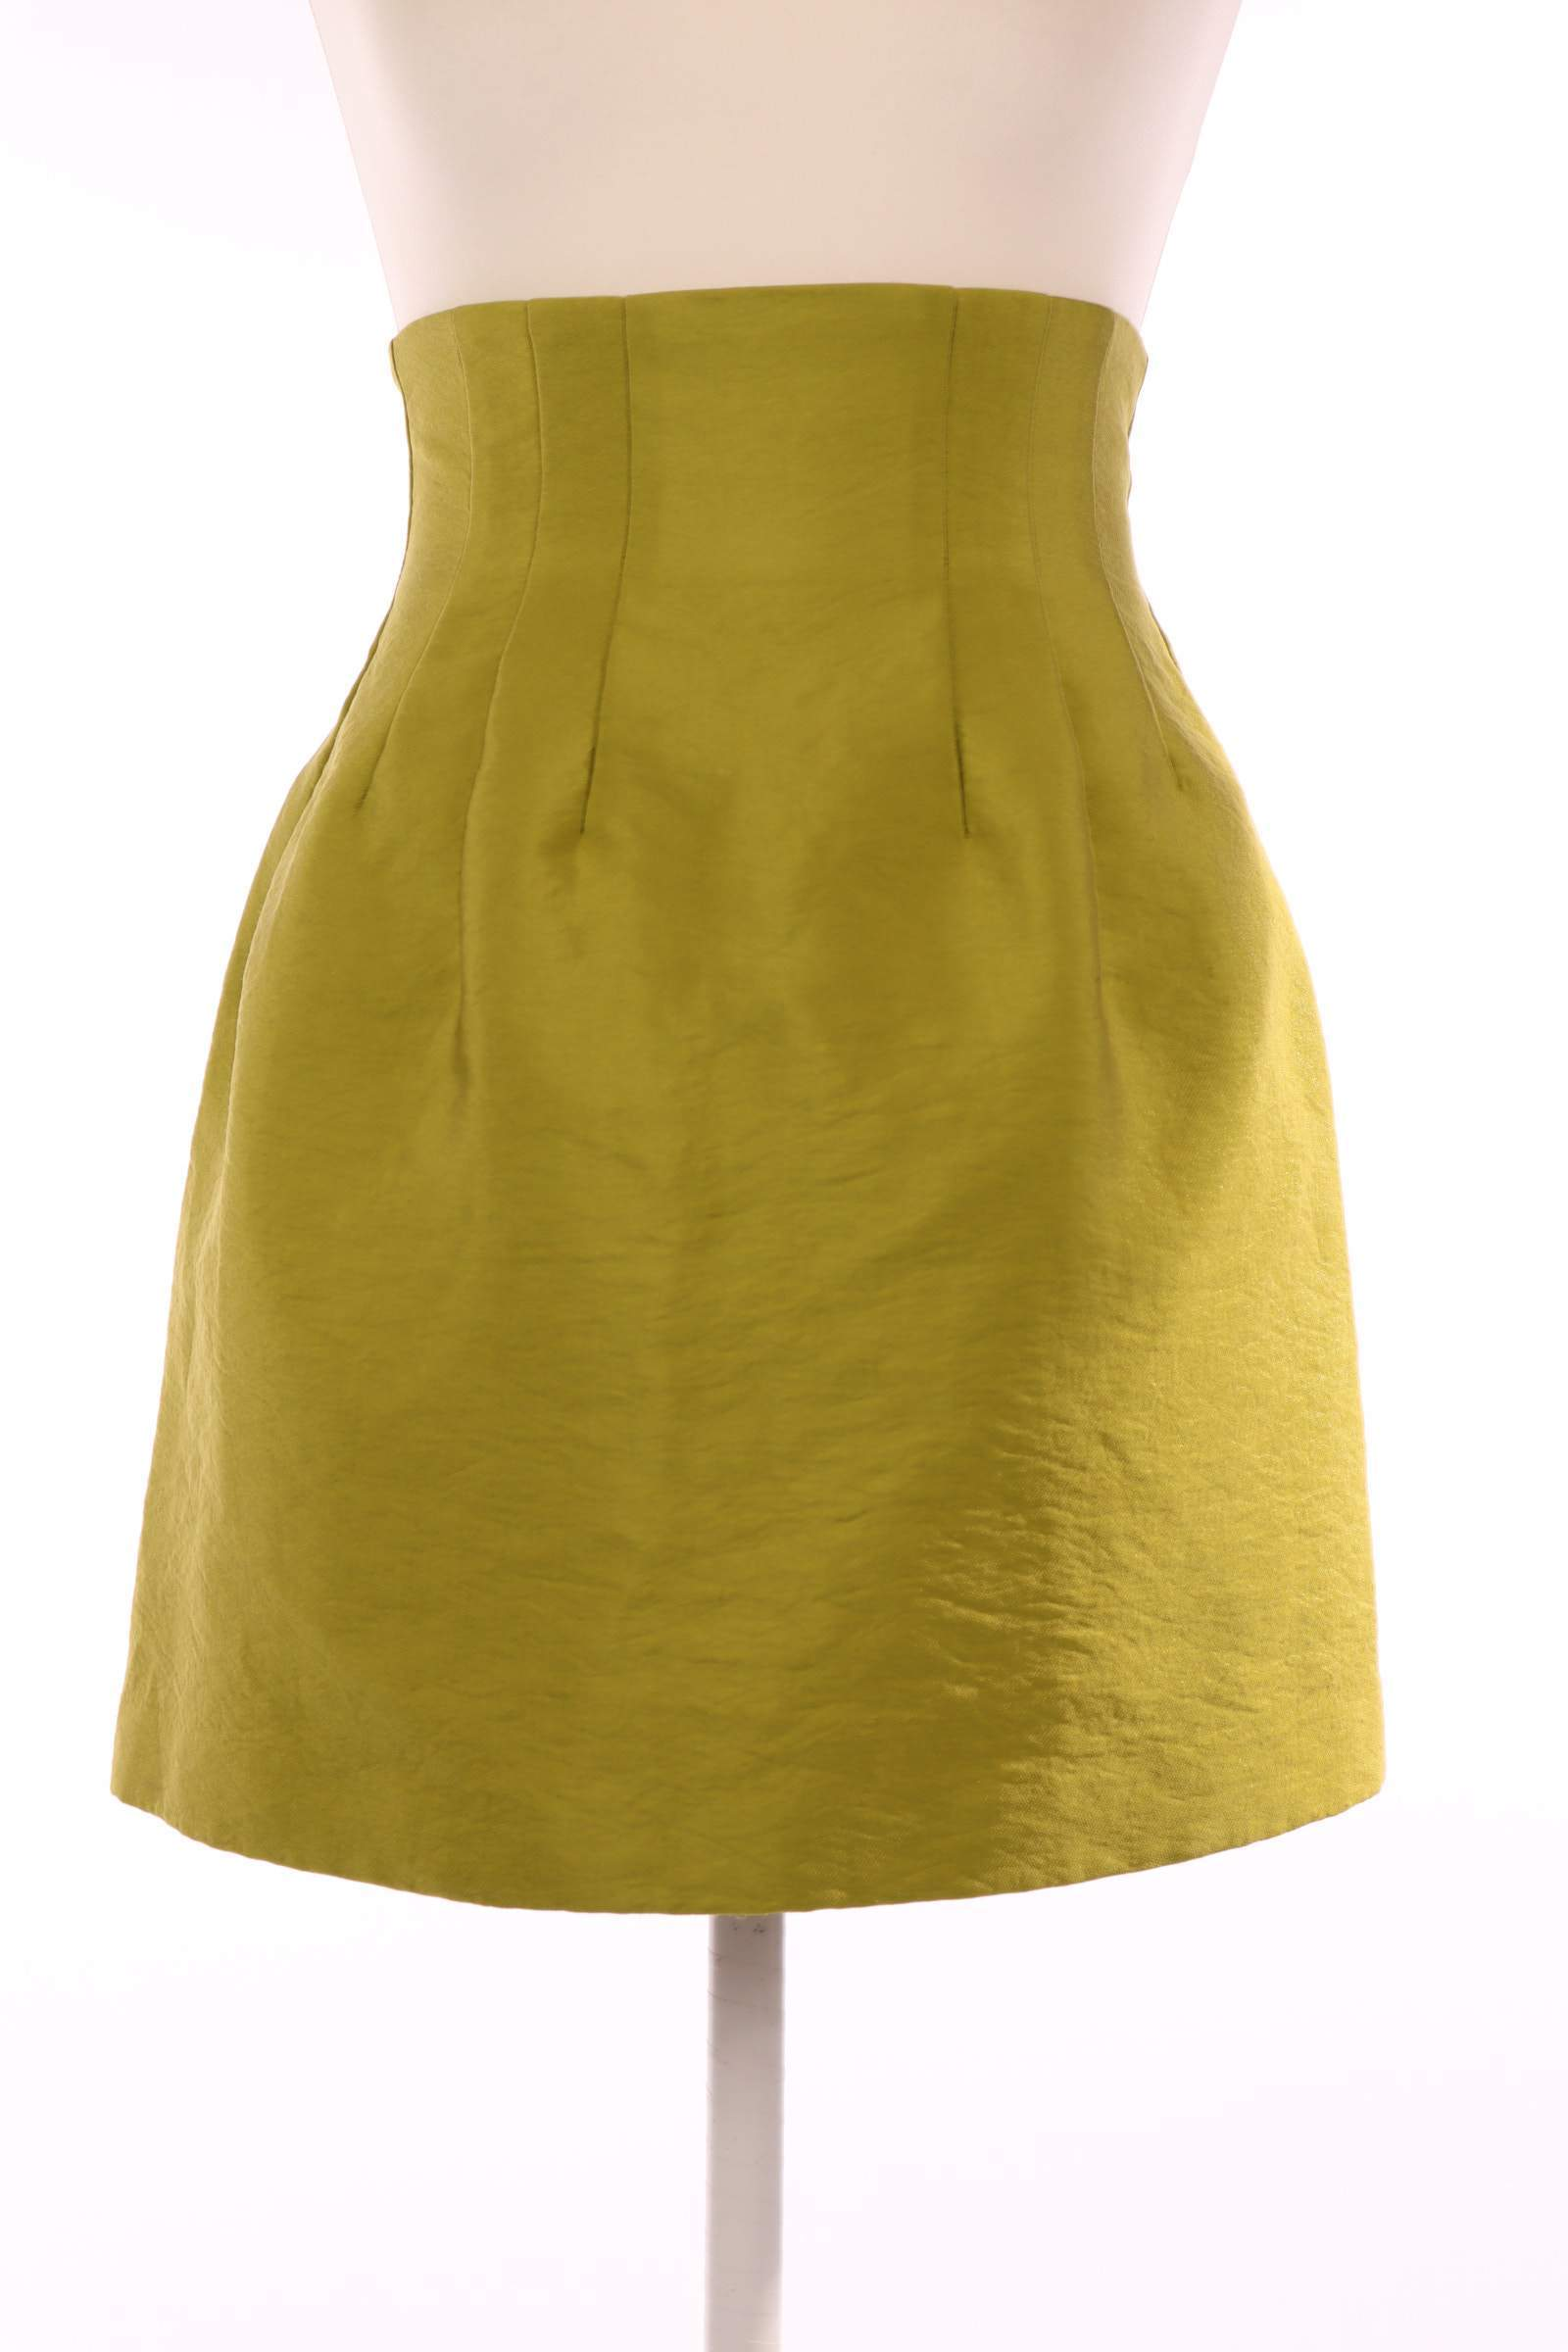 H&M Yellow Skirt - upty.store